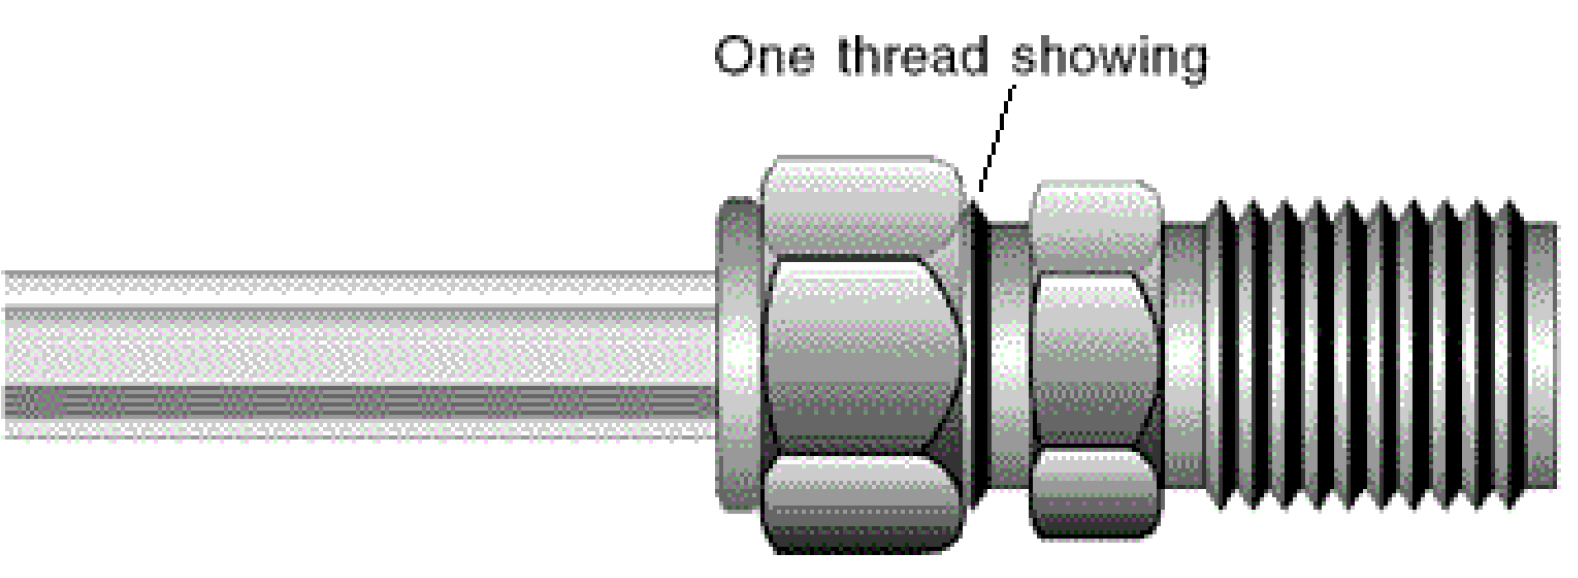 A-properly-tightened-compression-fitting